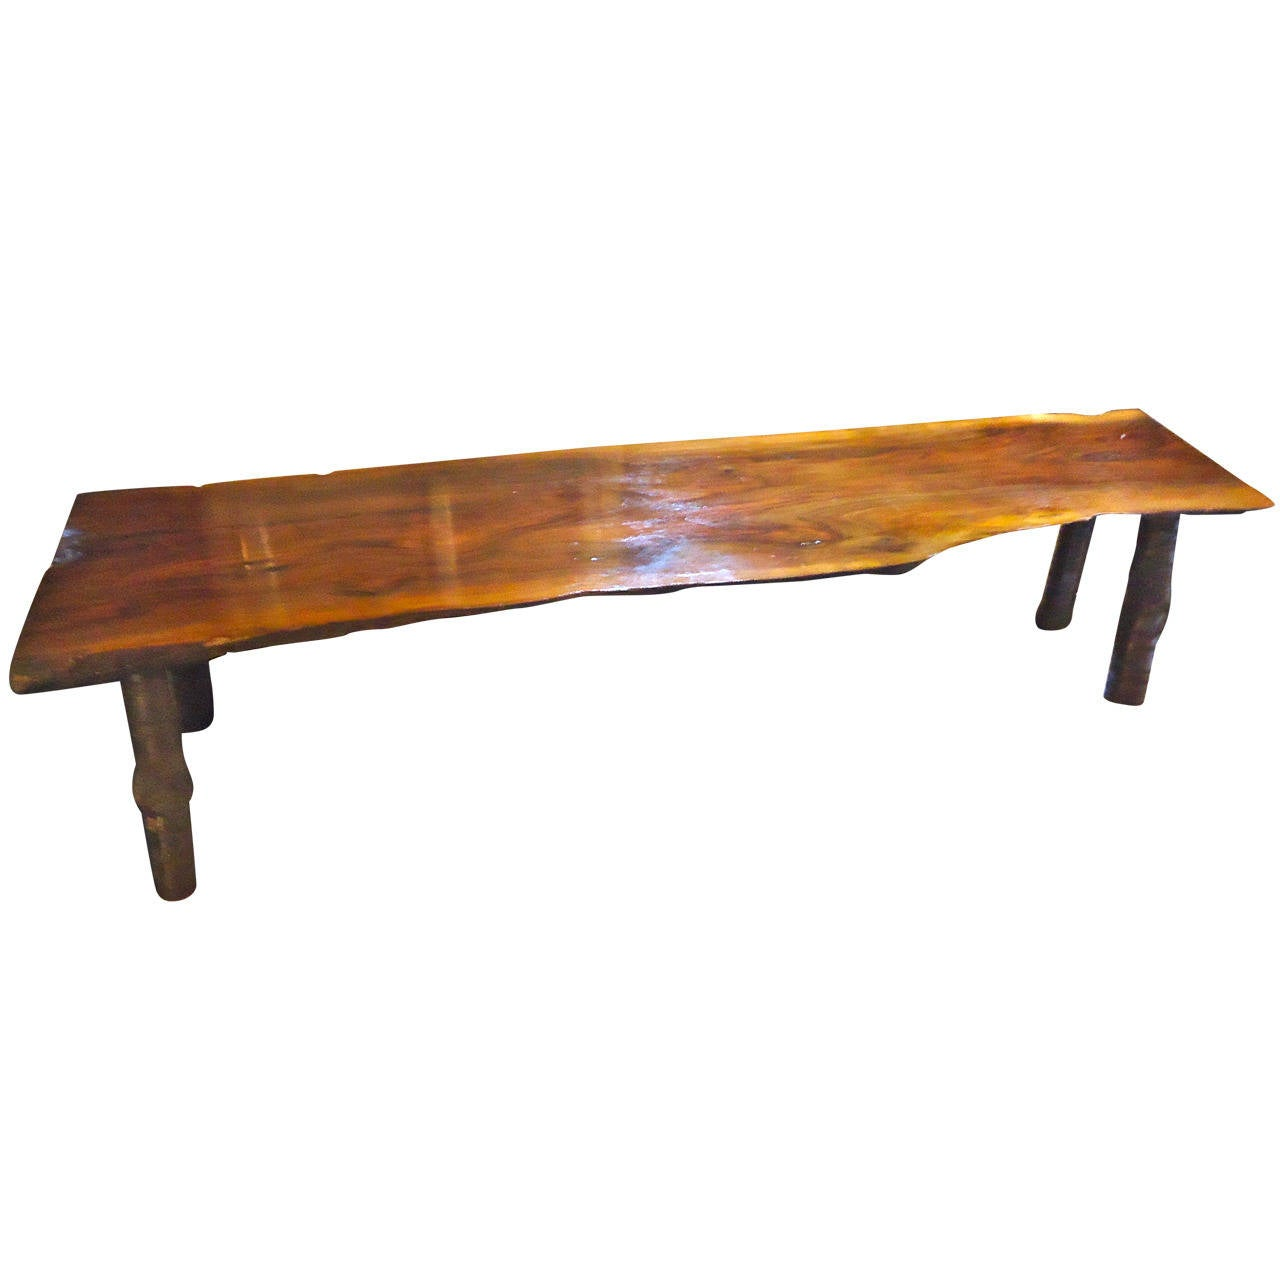 Nakashima style black walnut bench coffee table at 1stdibs nakashima style black walnut bench coffee table 1 geotapseo Gallery